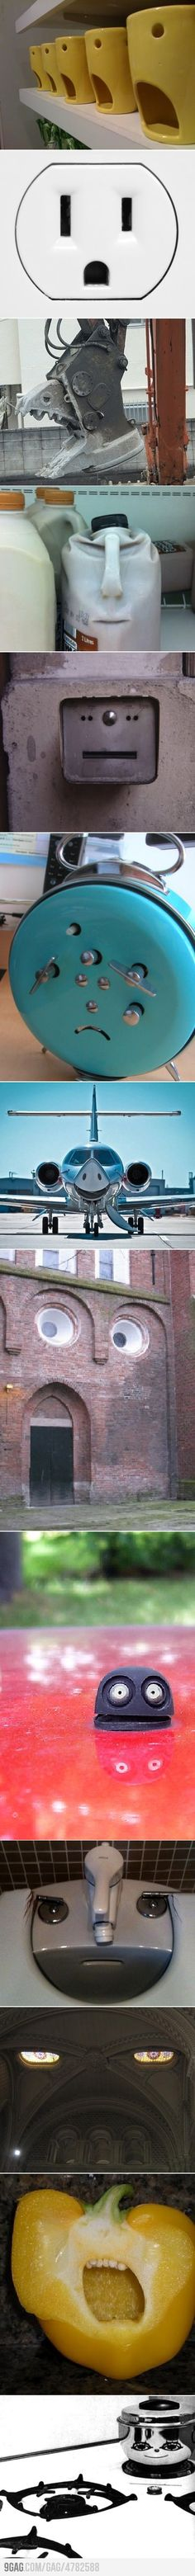 Pareidolia is a psychological phenomenon where vague and random stimulus seems significant.   You're not seeing faces everywhere are you?